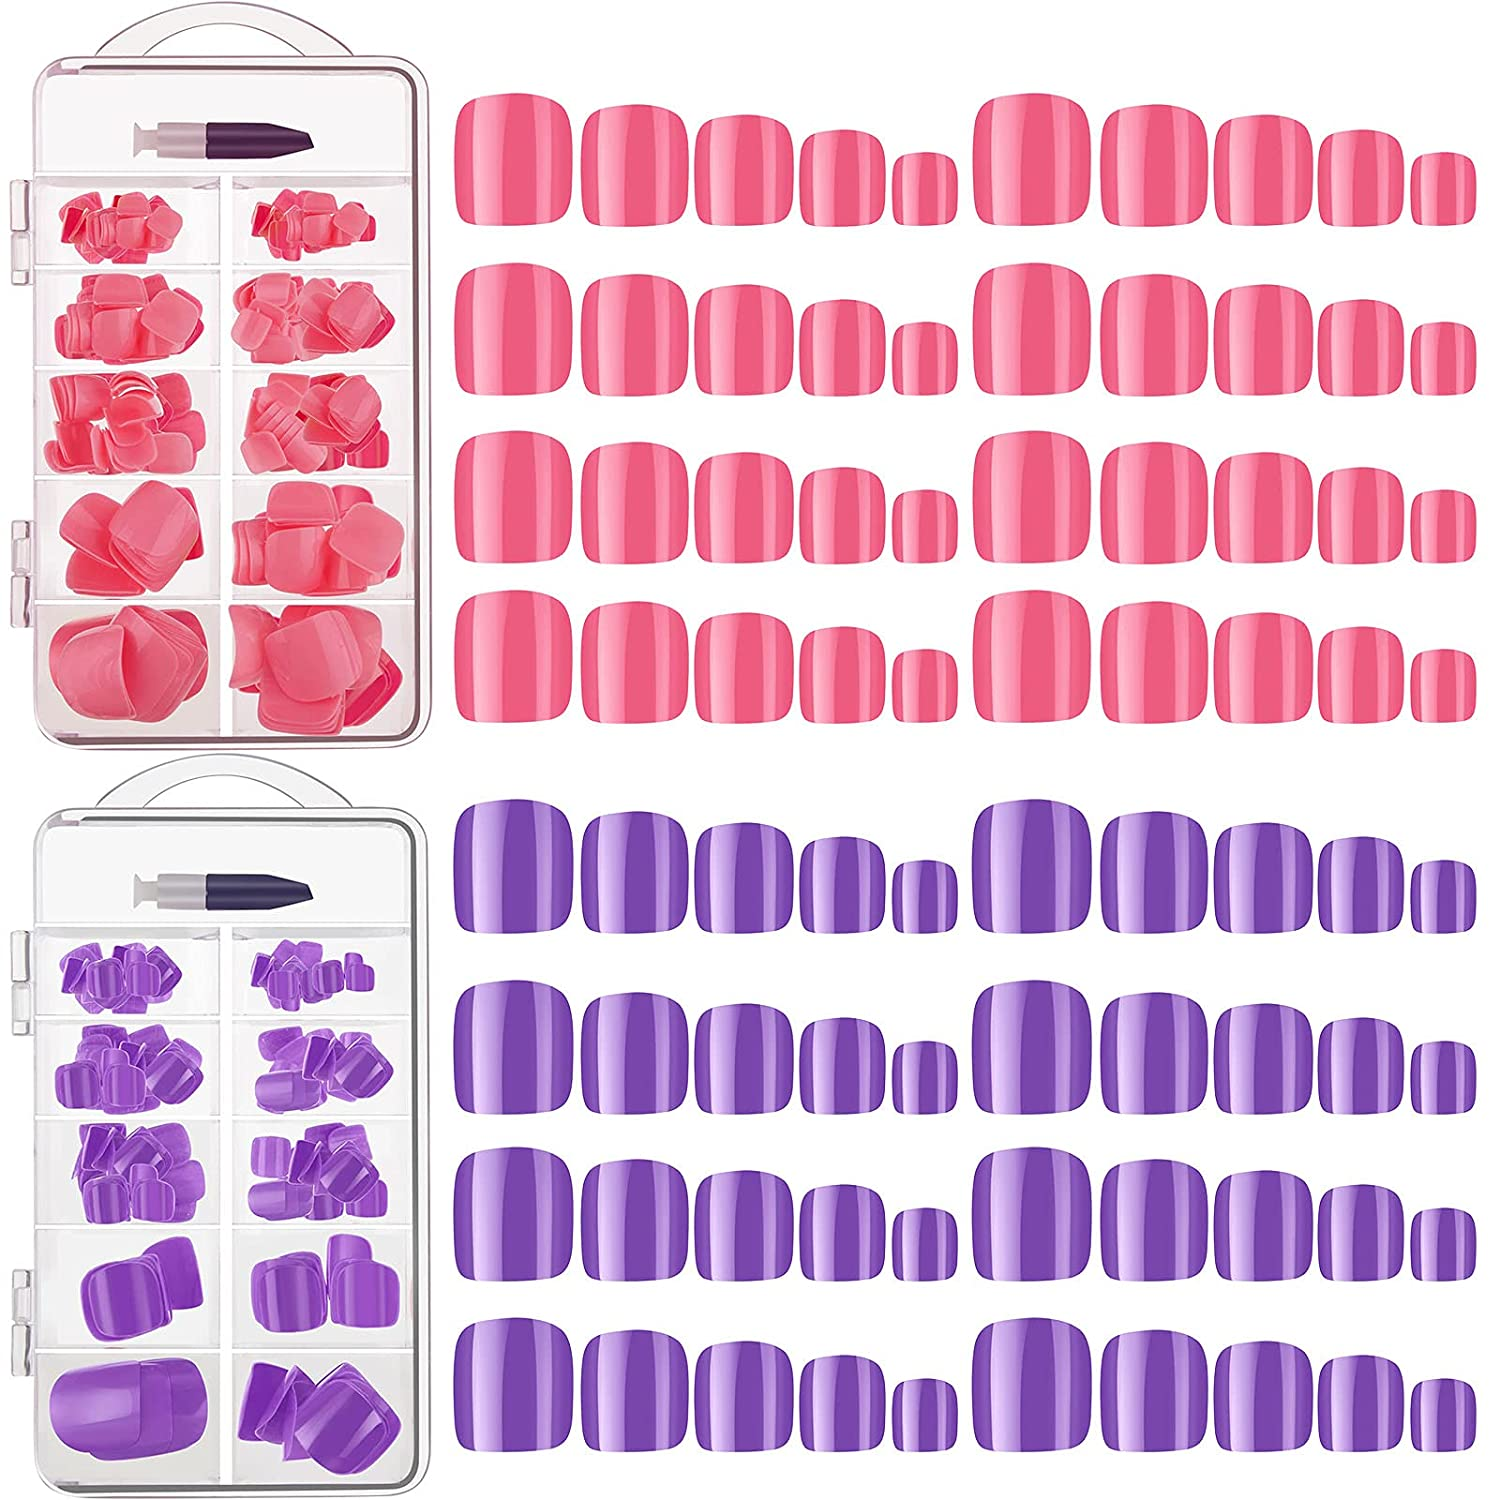 Clearance SALE! Limited time! 2 Boxes Short Square False Max 56% OFF Toe Press Nails Toenails Solid Col On